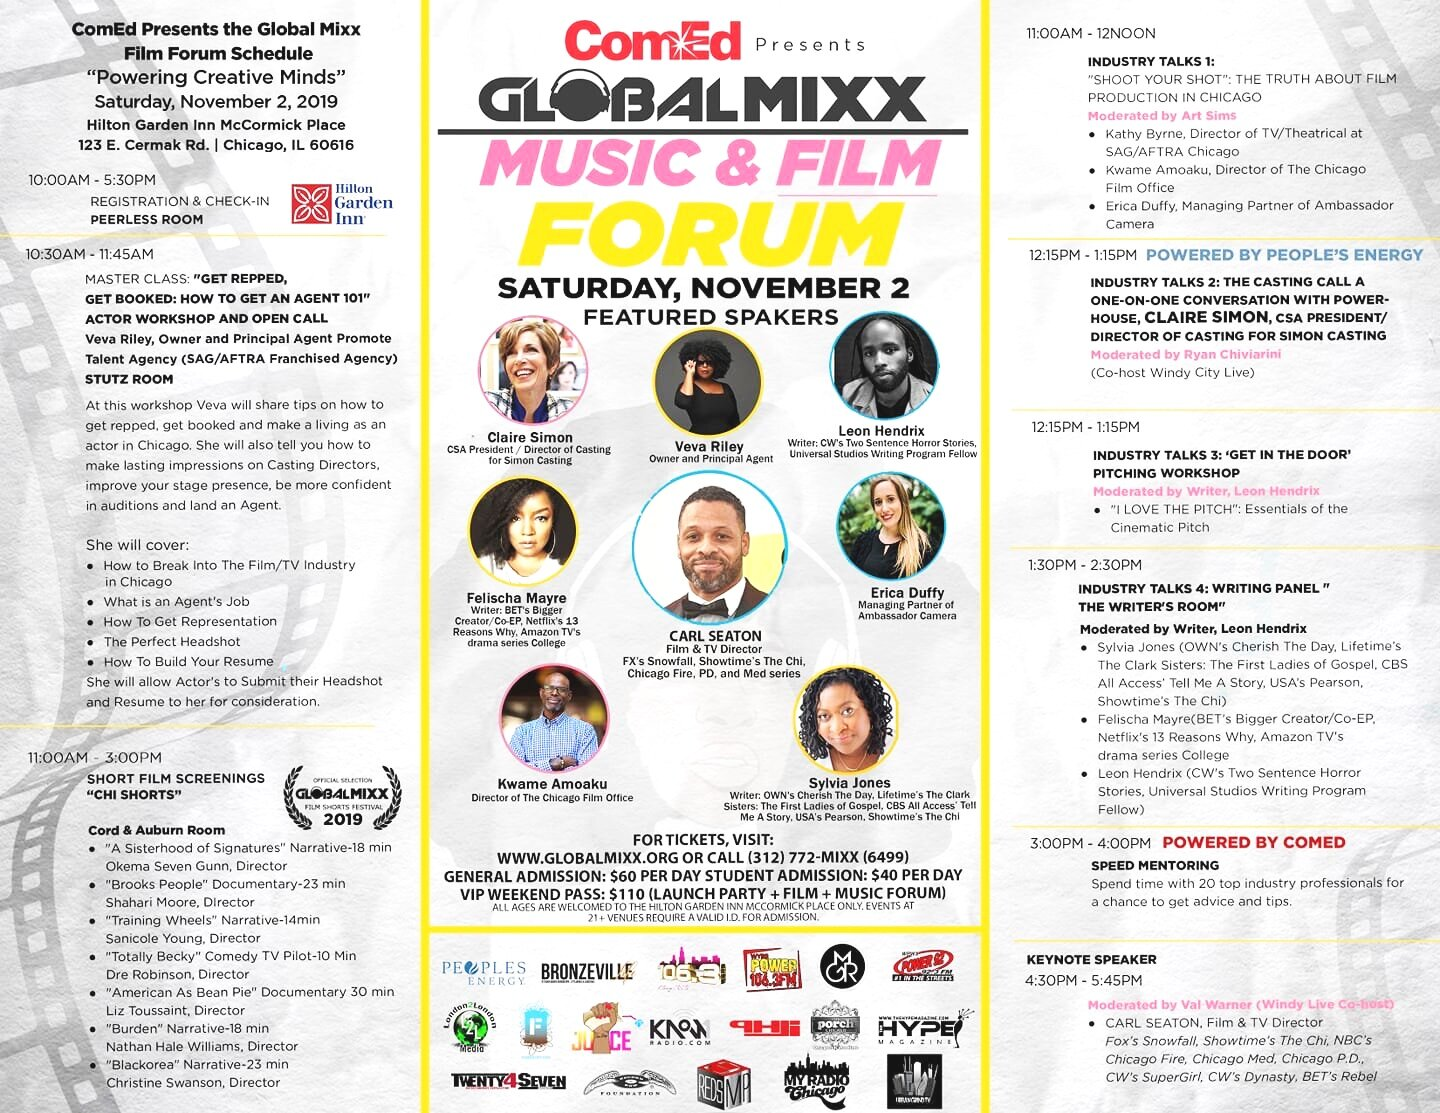 I was a guest on the ComEd Global Mixx Film Forum Speed Mentoring Panel.